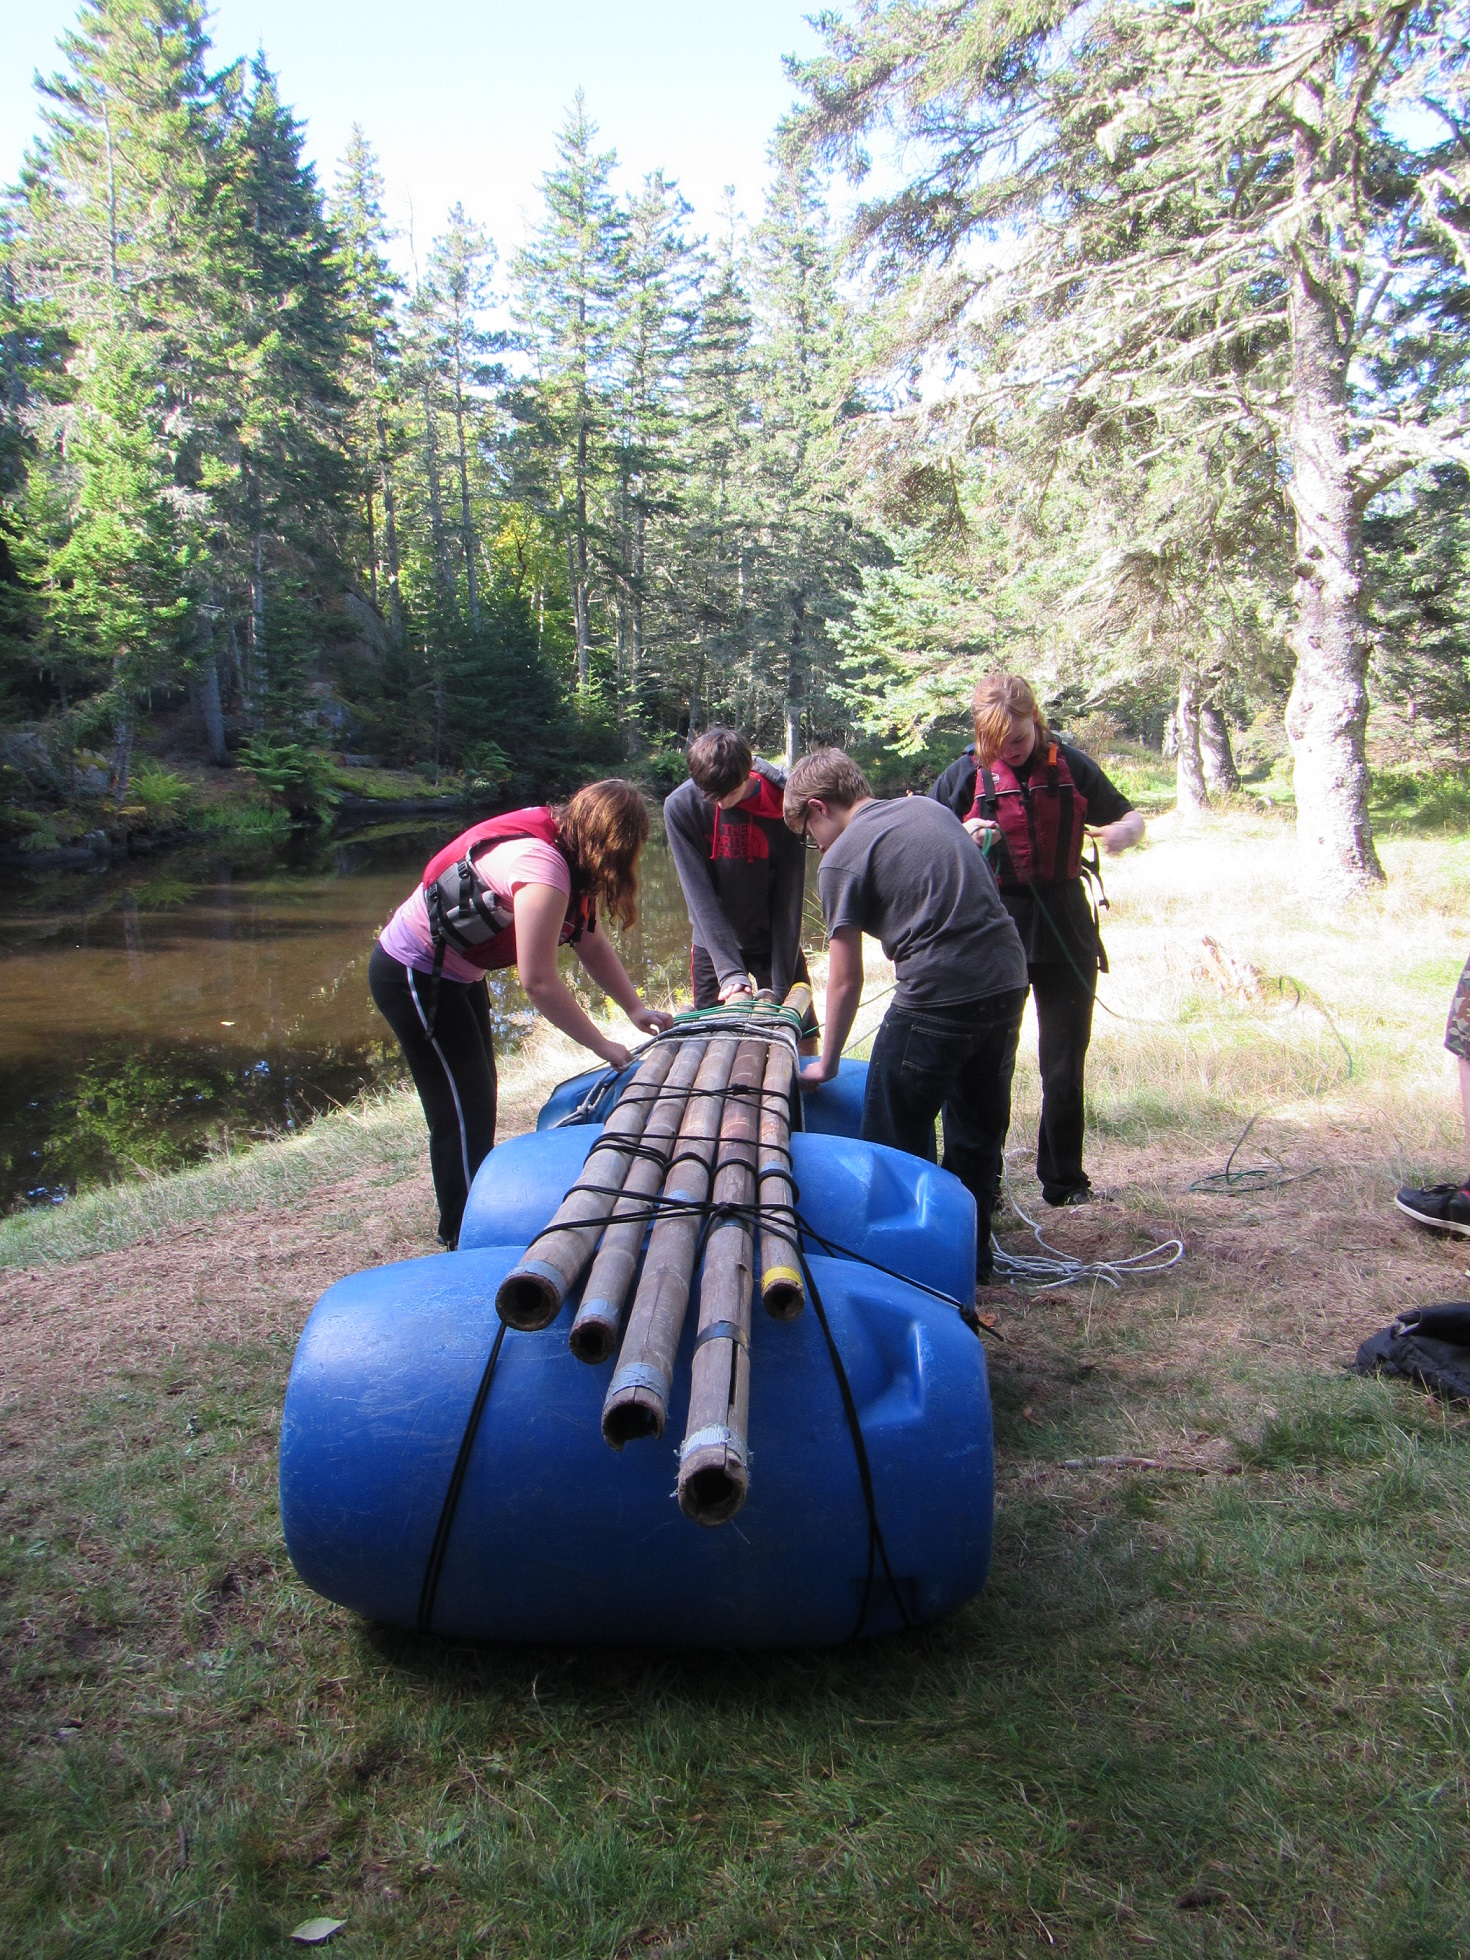 Final touches before launching the raft